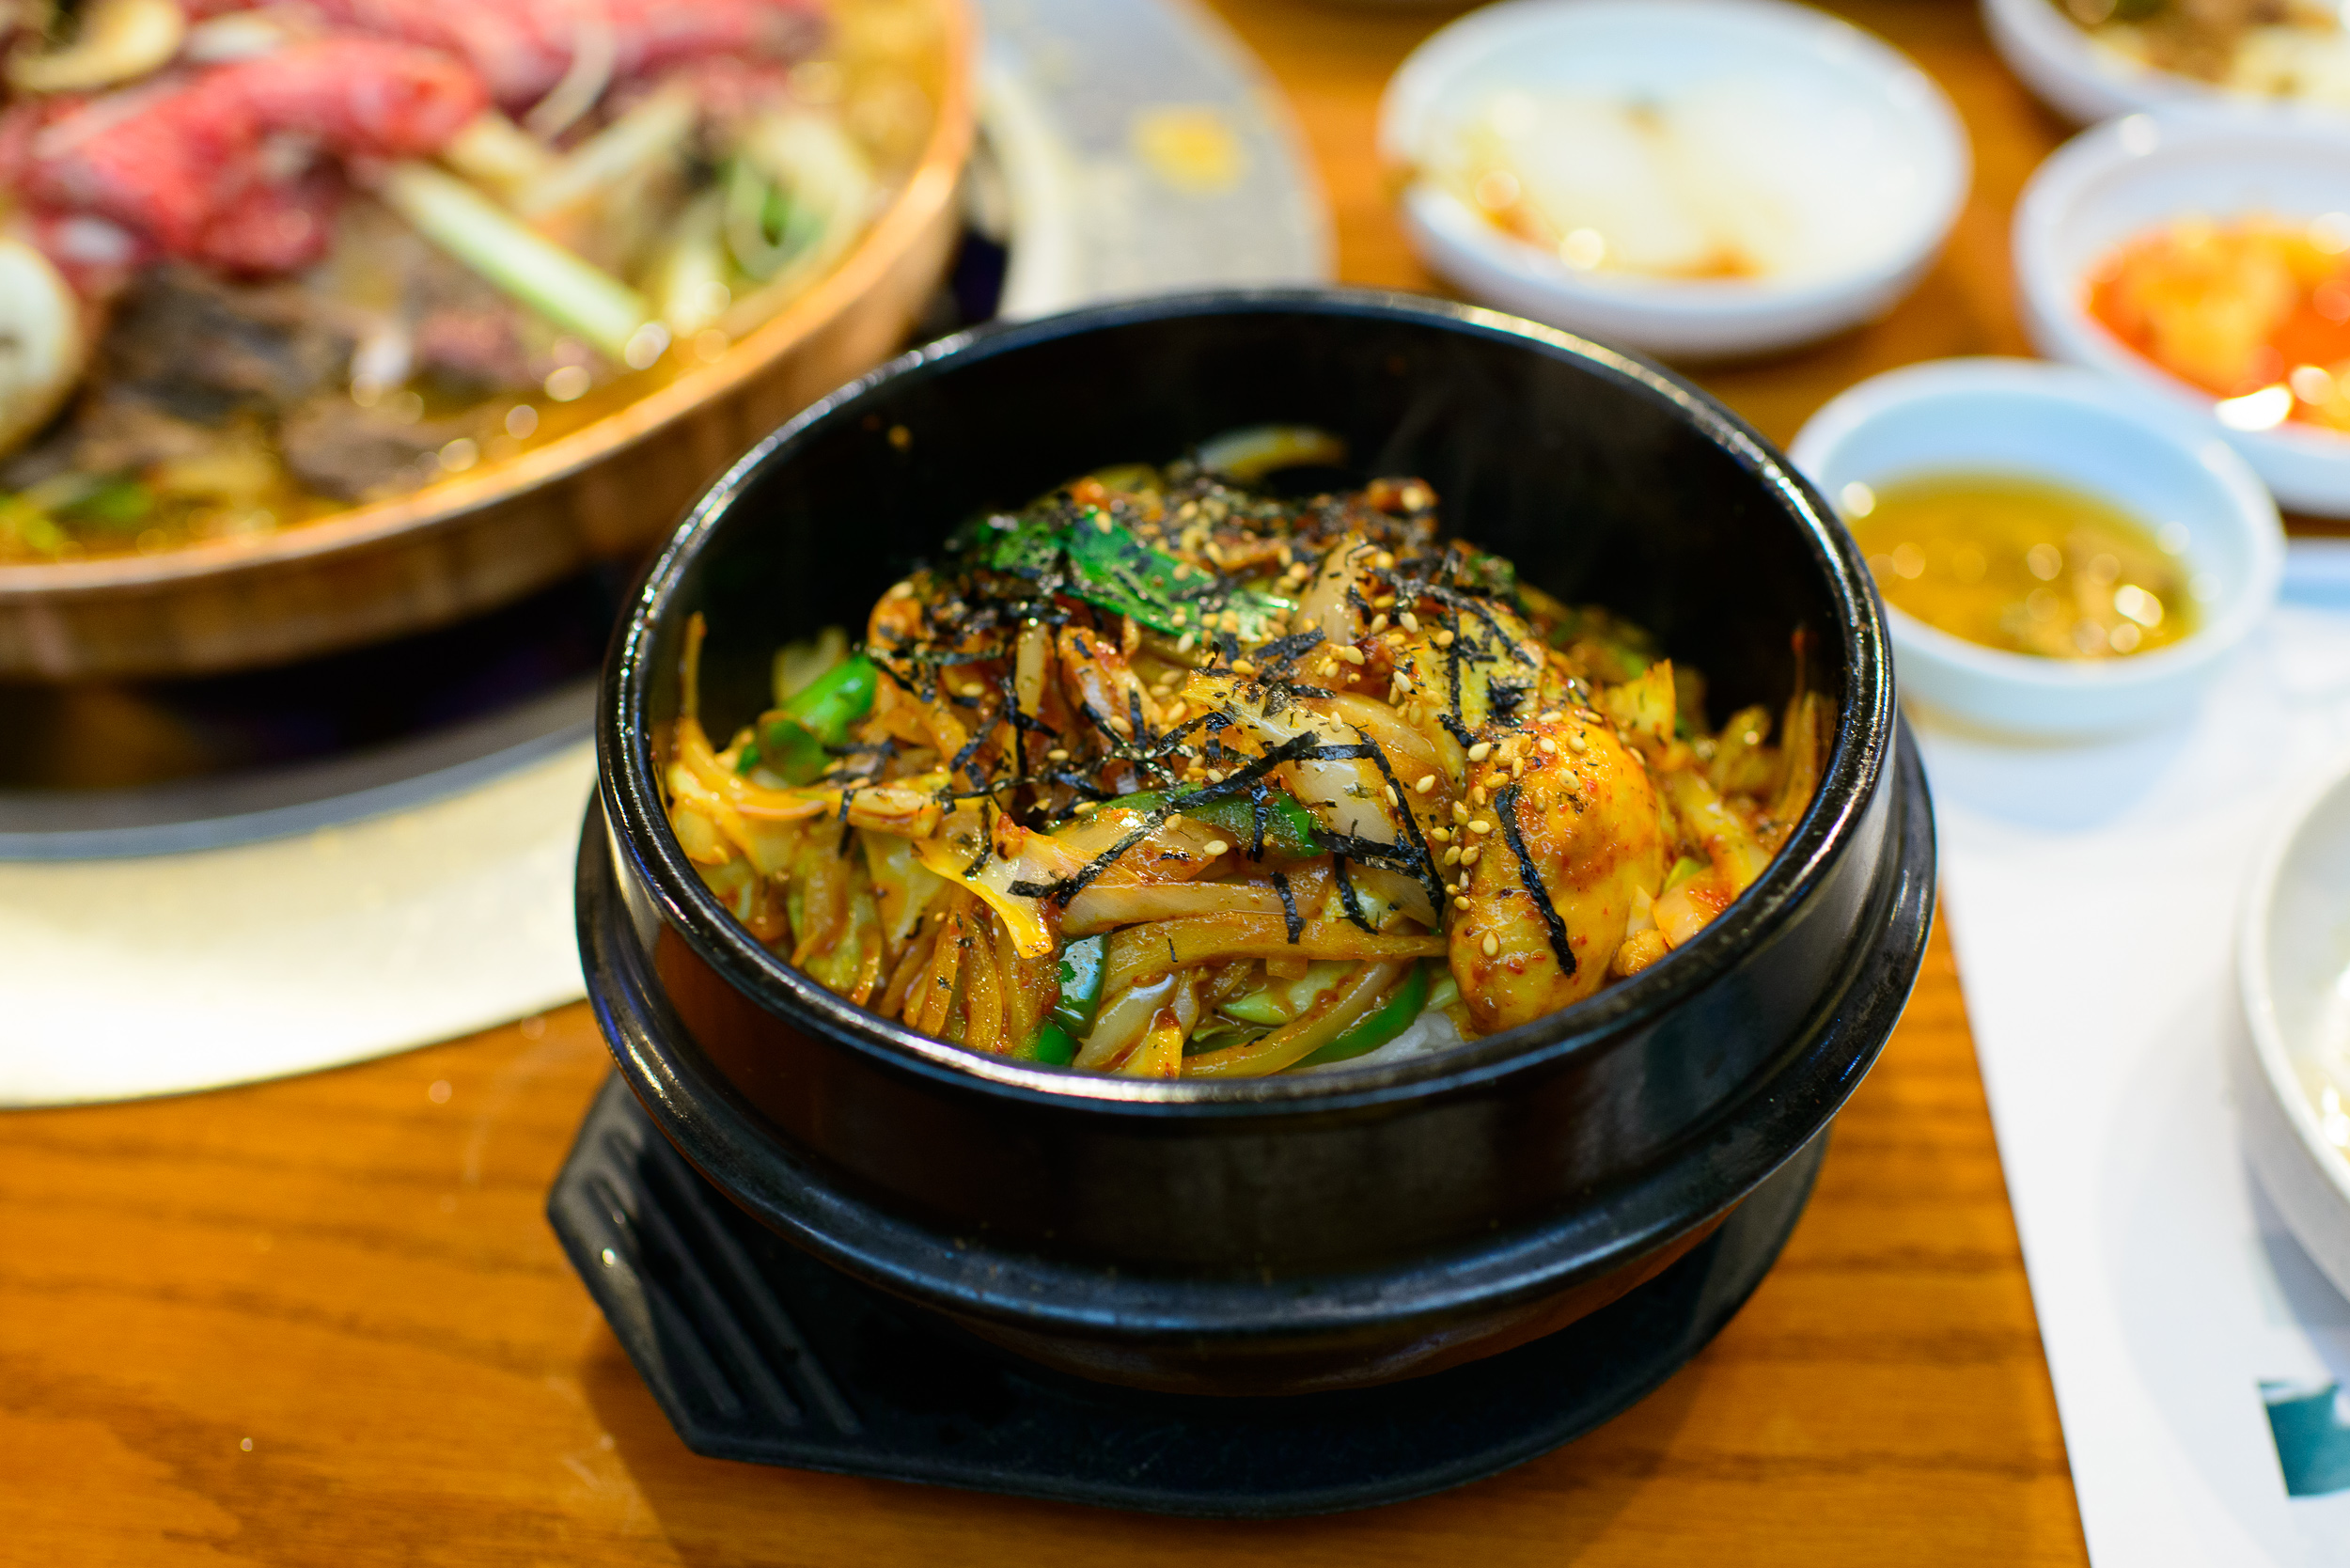 Jeyuk dupbap - pan-fried pork and vegetables with hot and spicy